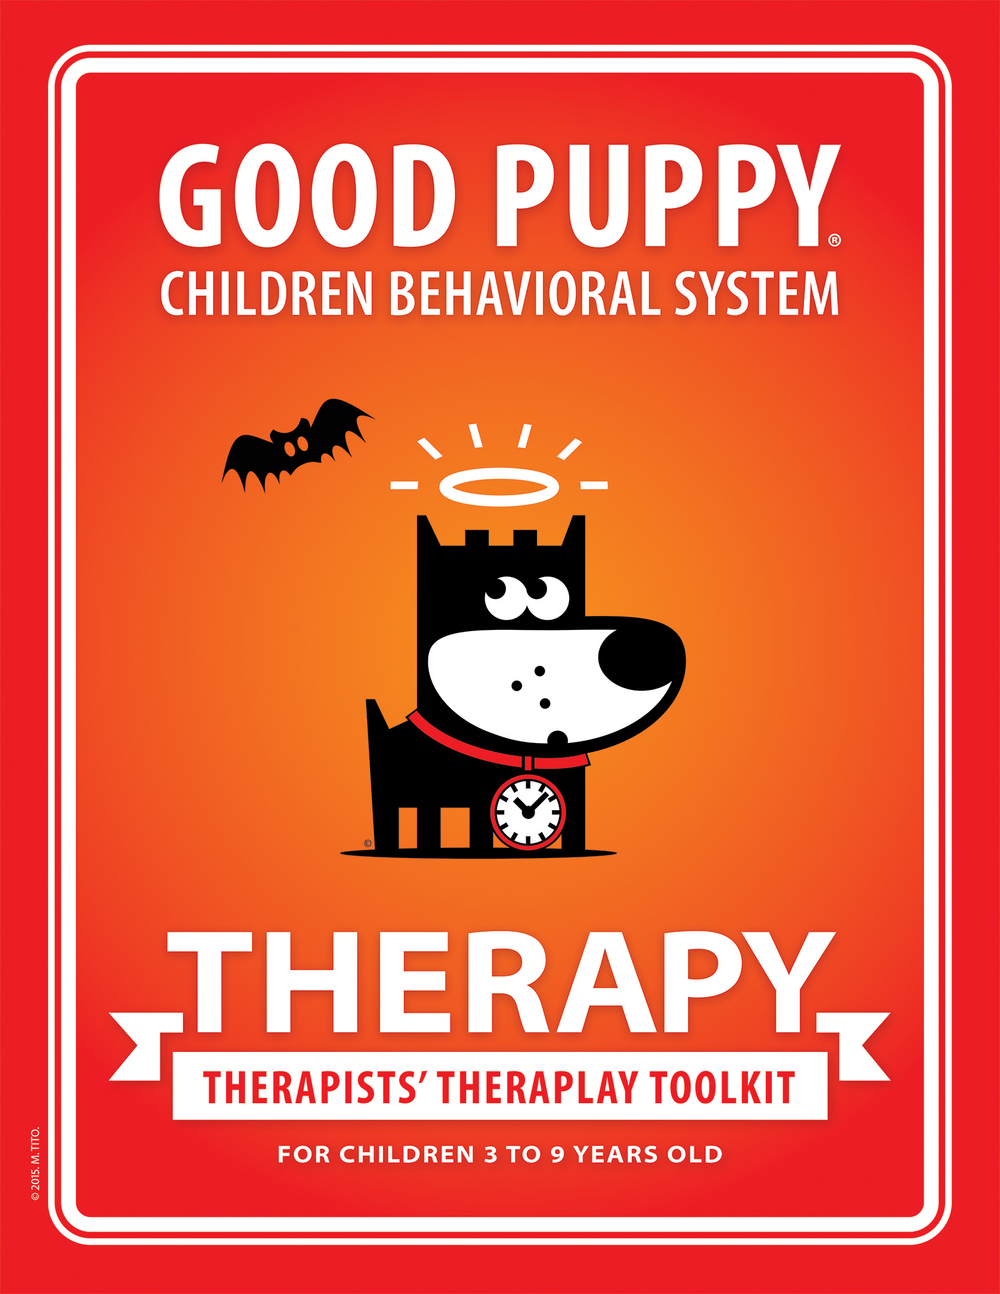 "THERAPY   GOOD PUPPY® Children Behavioral System    Created by Marina Tito & Lorenzo Di Alessandro    Recommended for Therapists of Children Ages 3 - 9   Publisher:  Good Puppy  Website:  goodpuppy.com  Email: books@goodpuppy.com  Publication Date: July, 2015 Language: English   Softcover edition   ISBN-13: 978-1-940692-34-0 ISBN-10: 1940692340  8.5"" x 11"" 70 pages   Printable PDF edition   ISBN-13: 978-1-940692-37-1 ISBN-10: 1940692371  8.5"" x 11"" 70 pages"